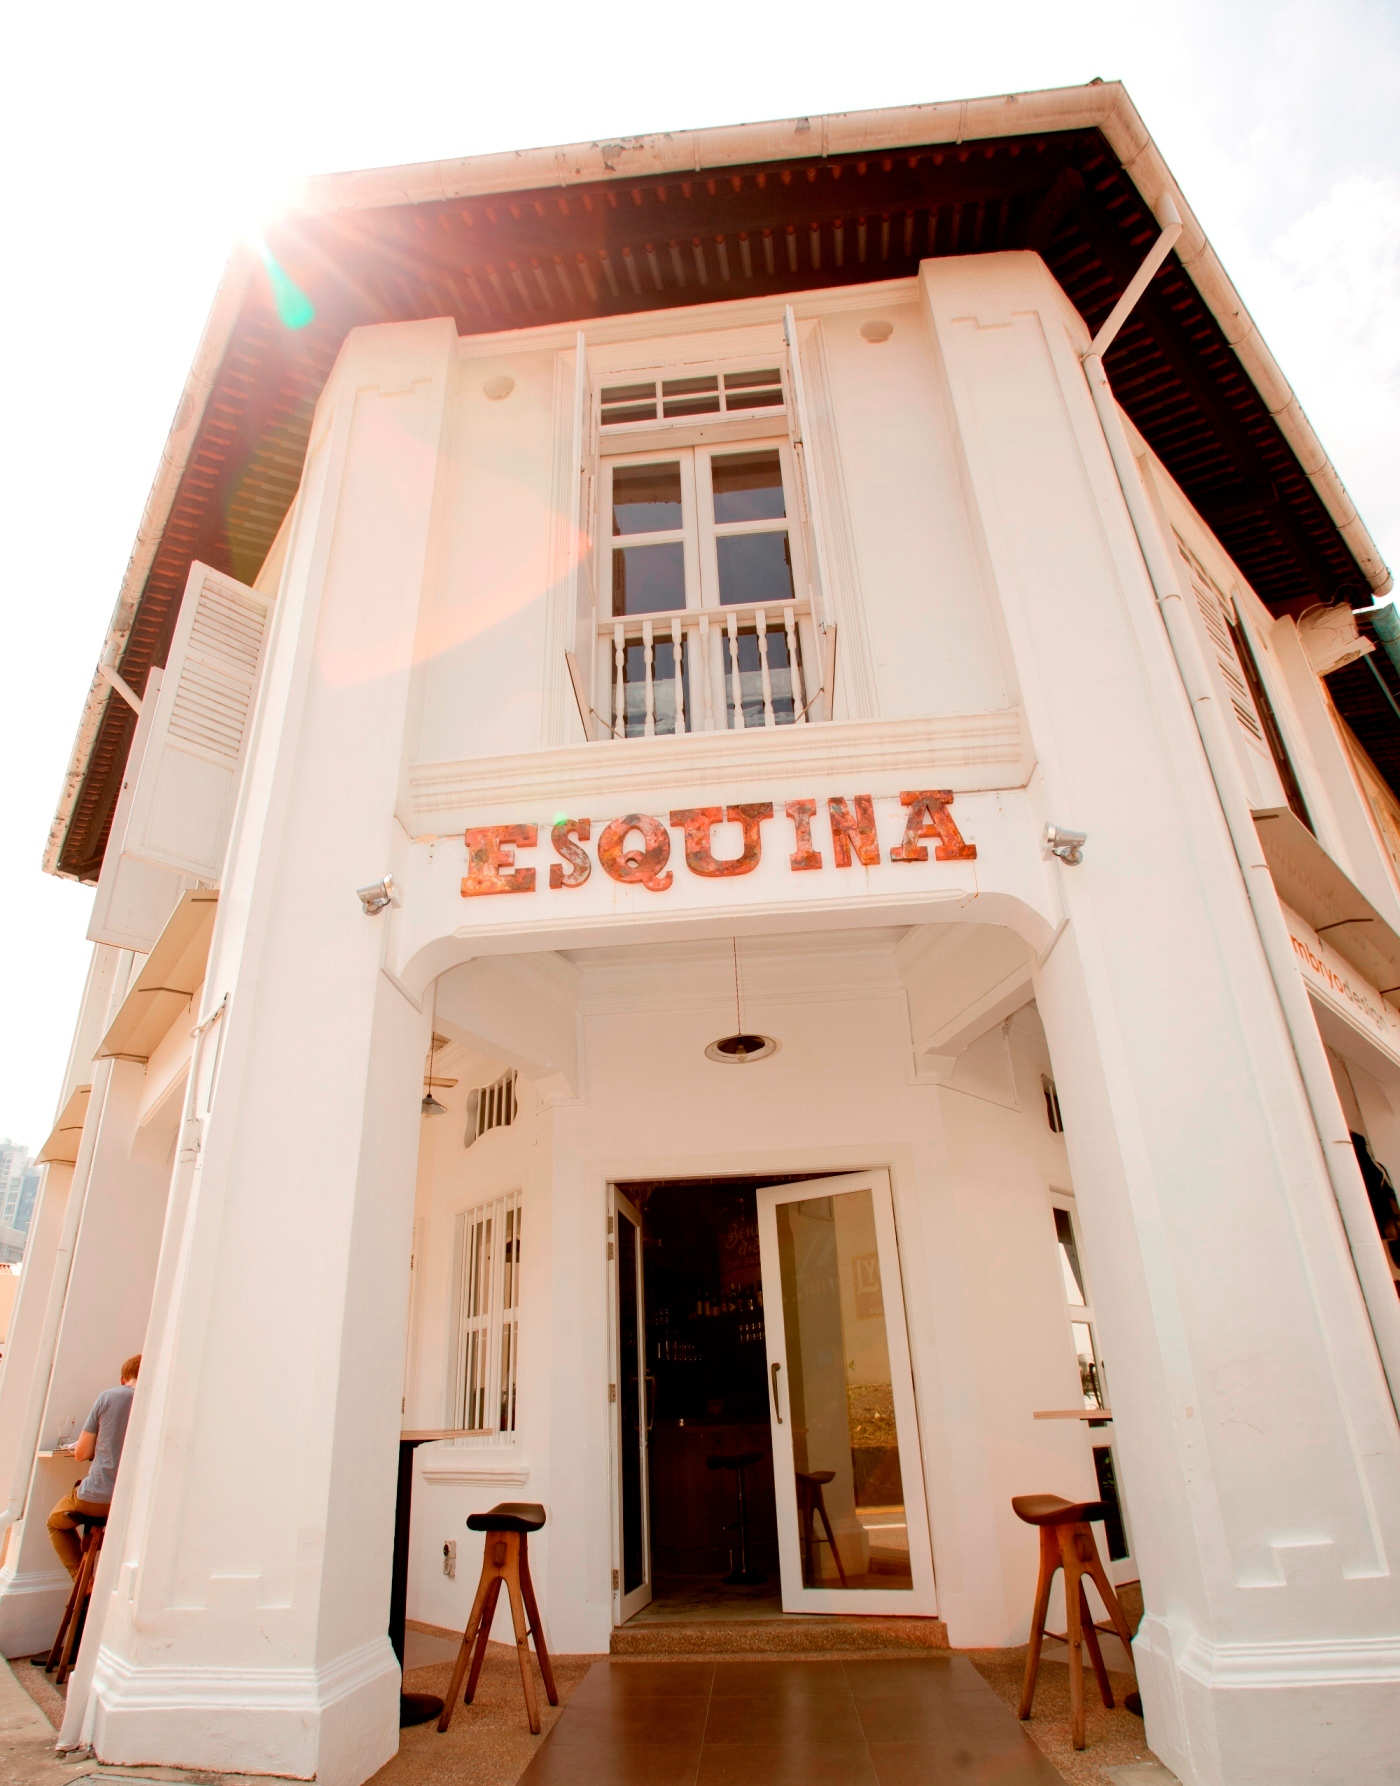 unlisted-collection-venuerific-blog-esquina-entrance